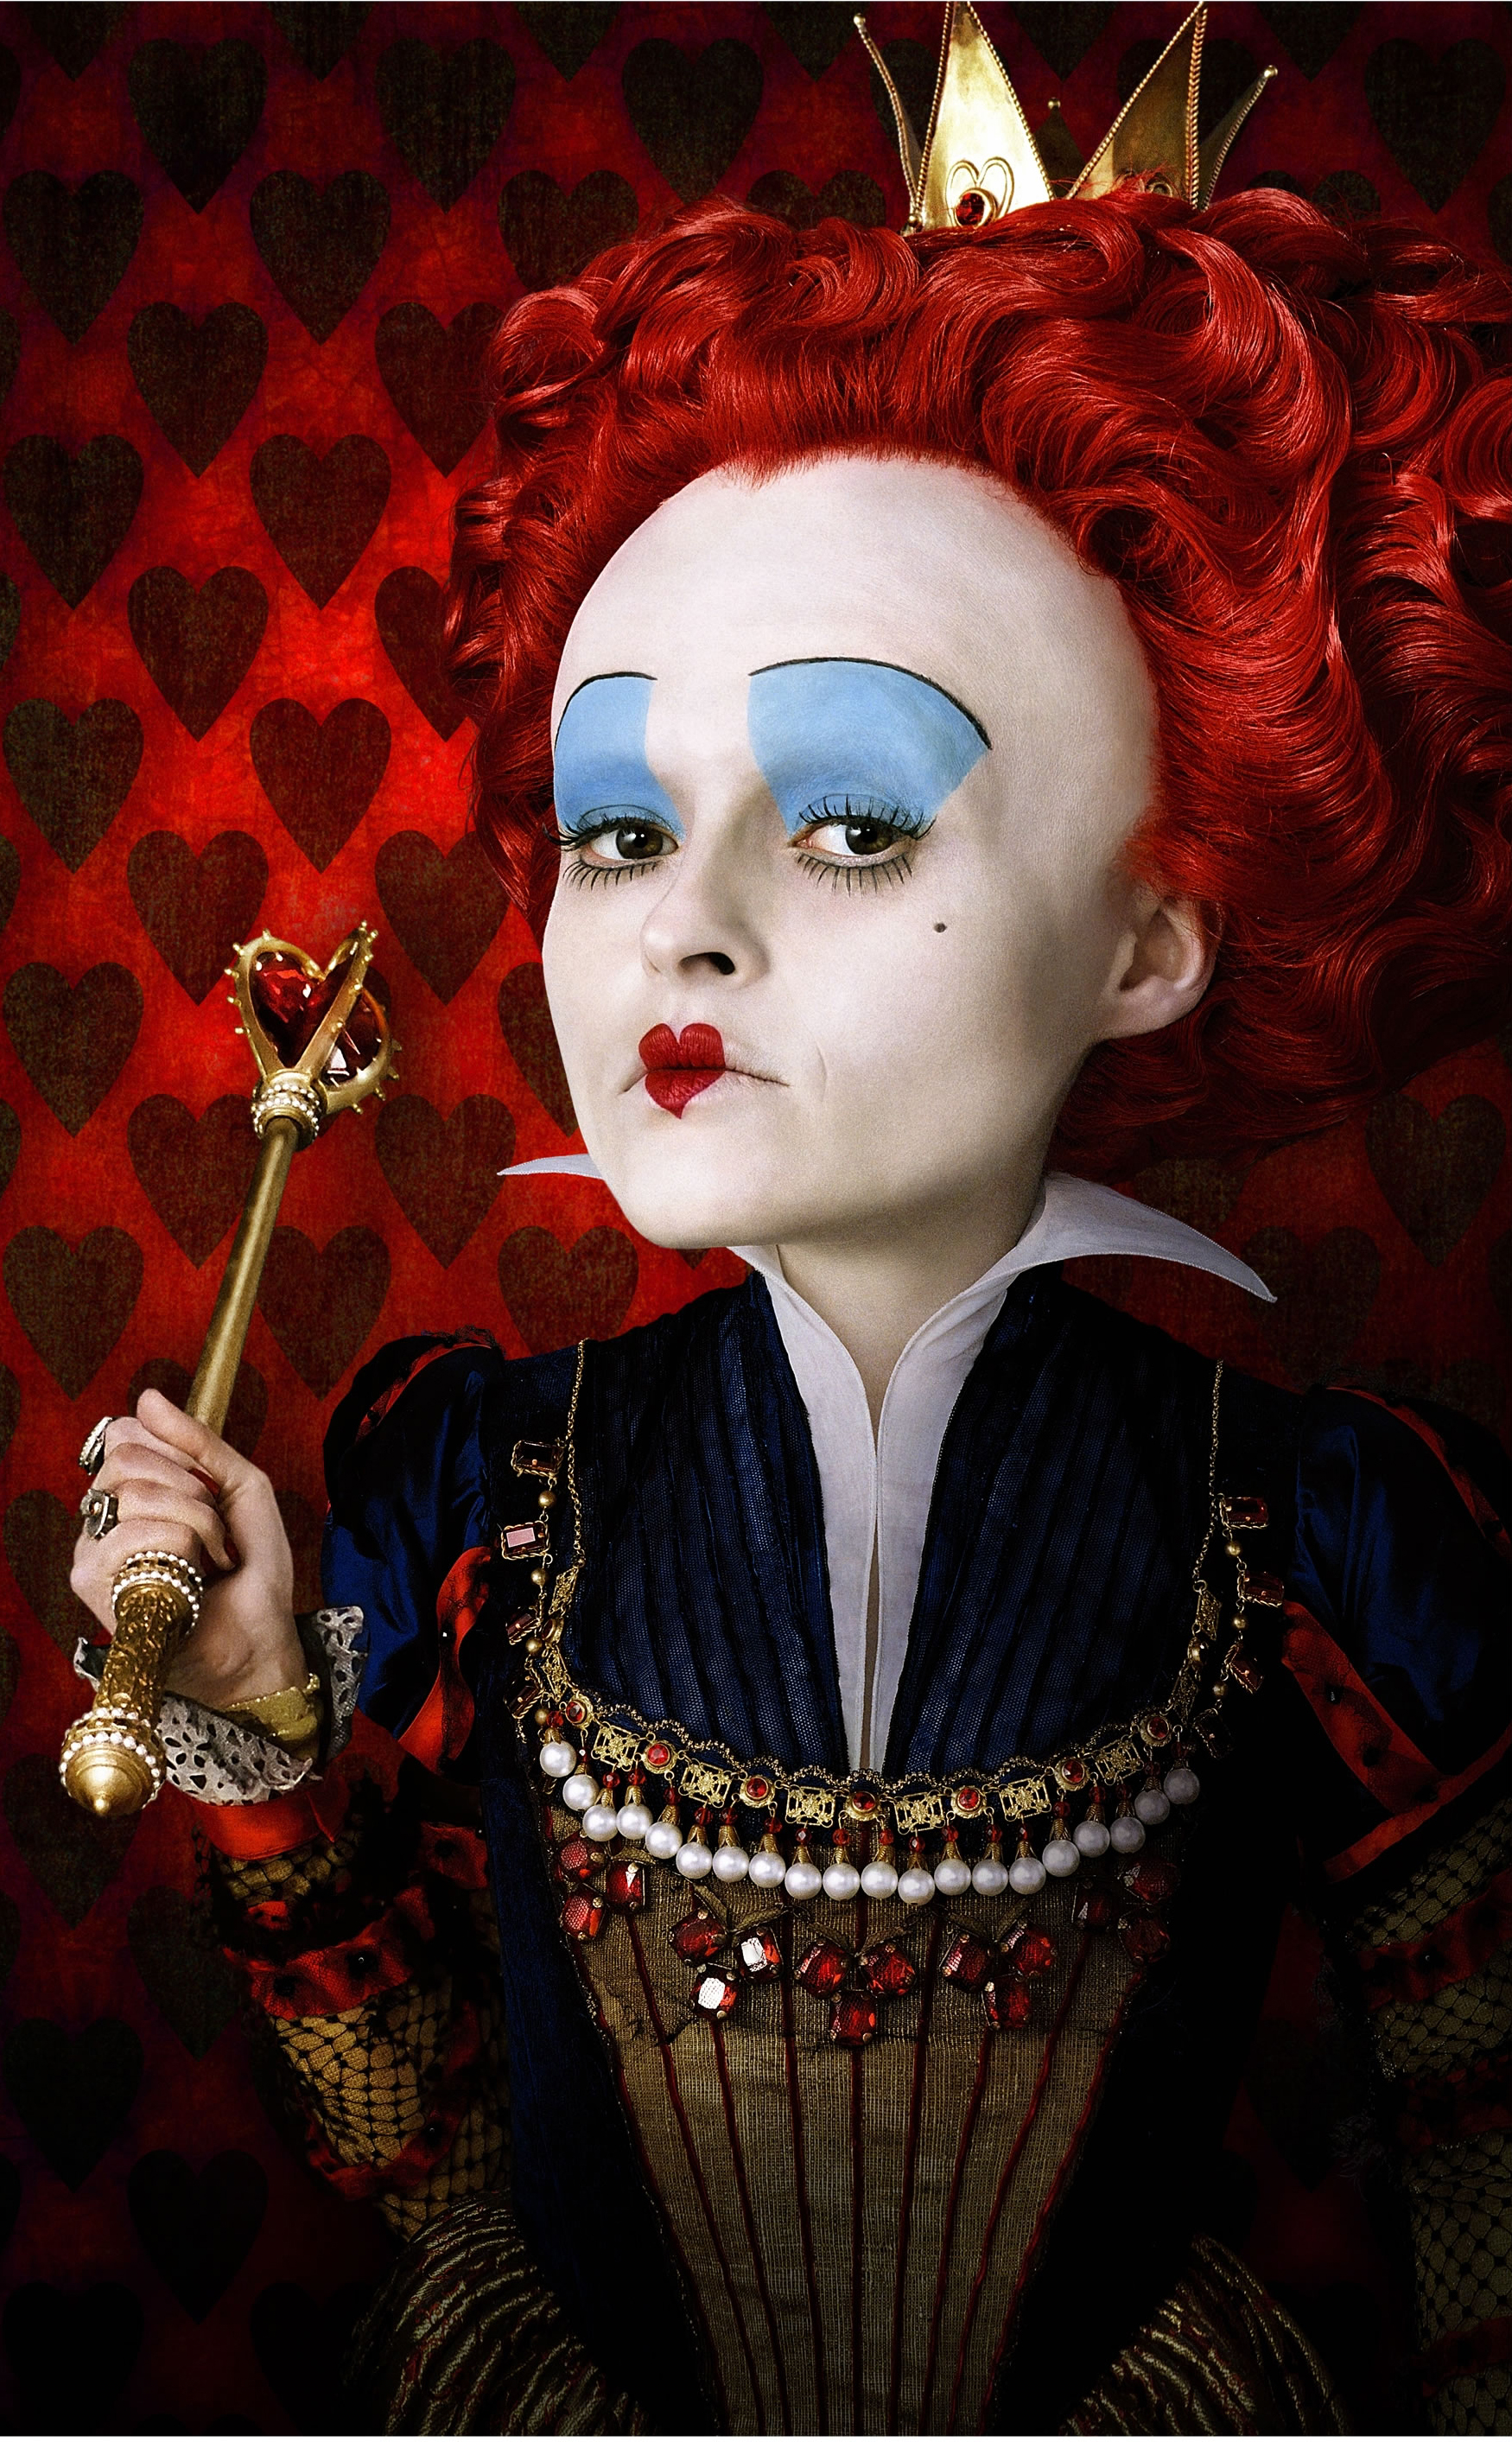 2010-Red-queenQueen Of Hearts Alice In Wonderland Tim Burton